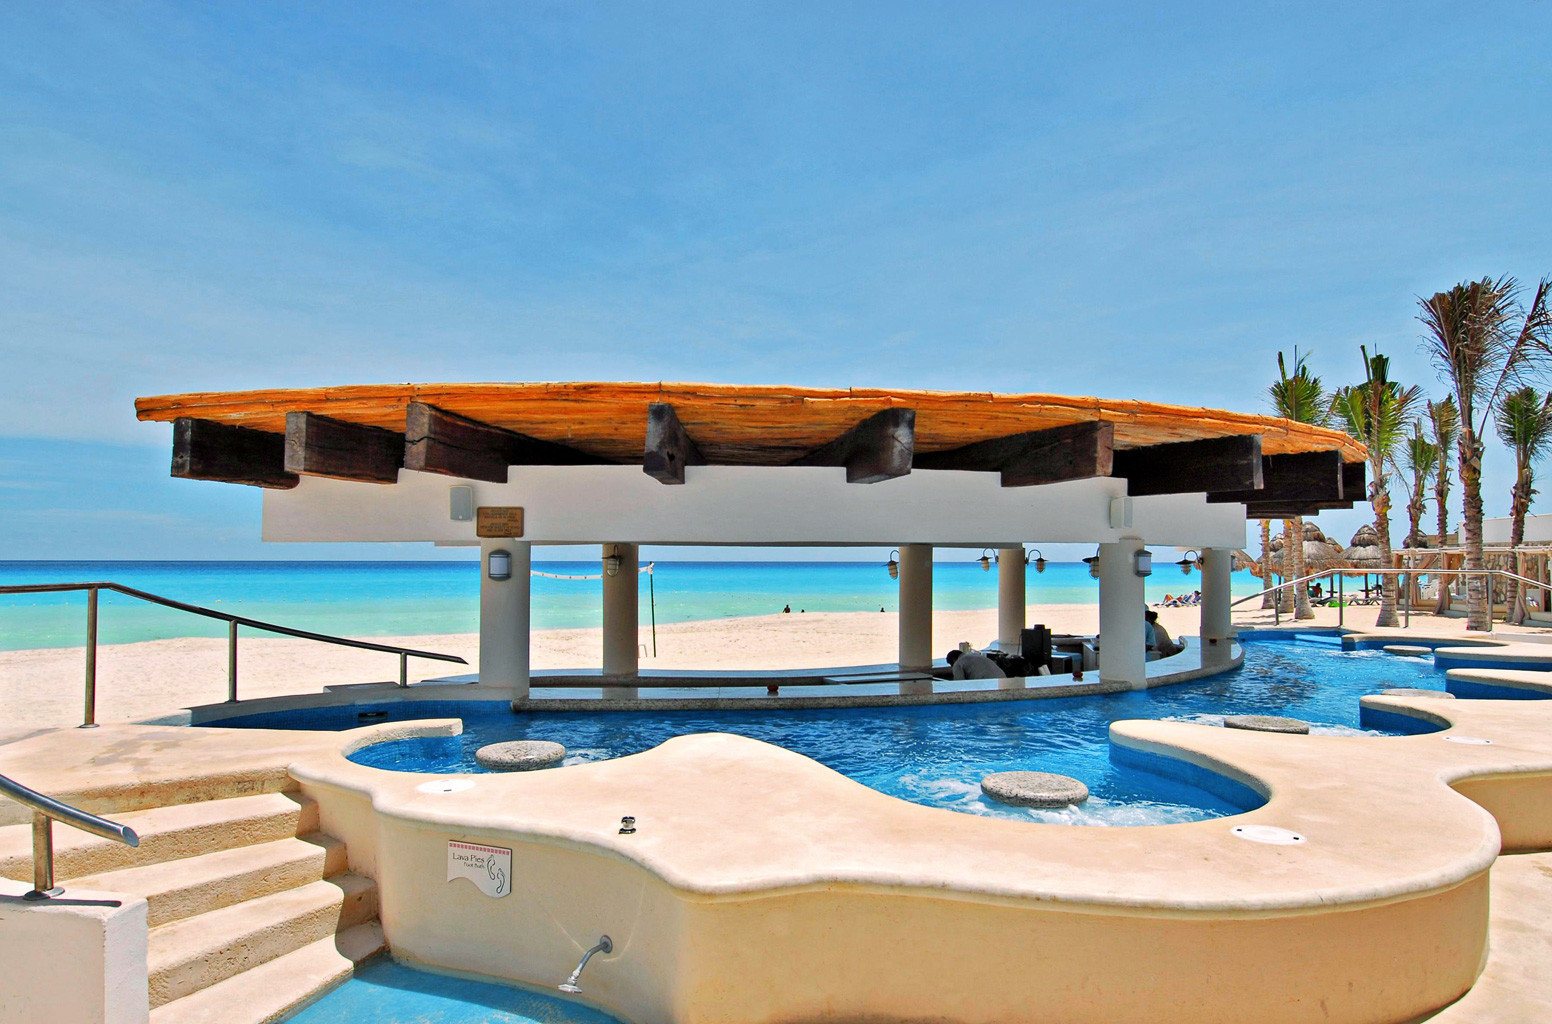 Beach Beachfront Hot tub/Jacuzzi Luxury sky chair swimming pool leisure property Resort Villa lawn Pool lined shore swimming